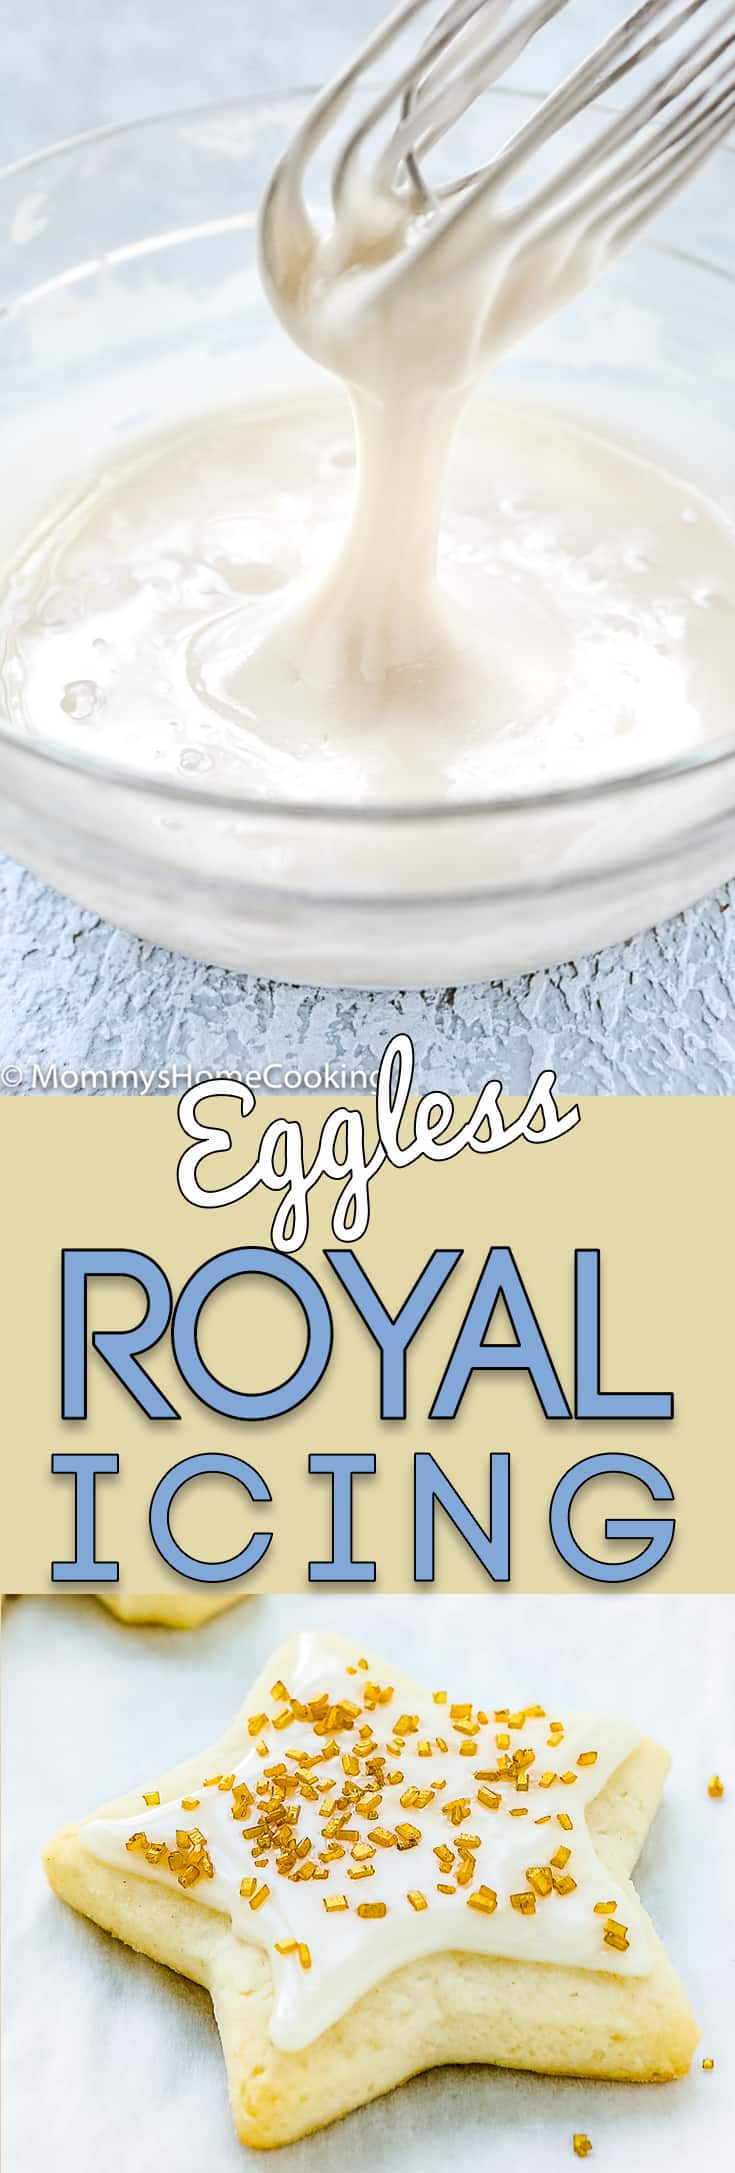 This Eggless Royal Icing is for perfect decorating cookies! With a subtle lemony taste, it's great for anything from sugar cookies to drawing decorative shapes or gluing together a gingerbread house. It hardens when it dries so decorations stay in place. http://mommyshomecooking.com